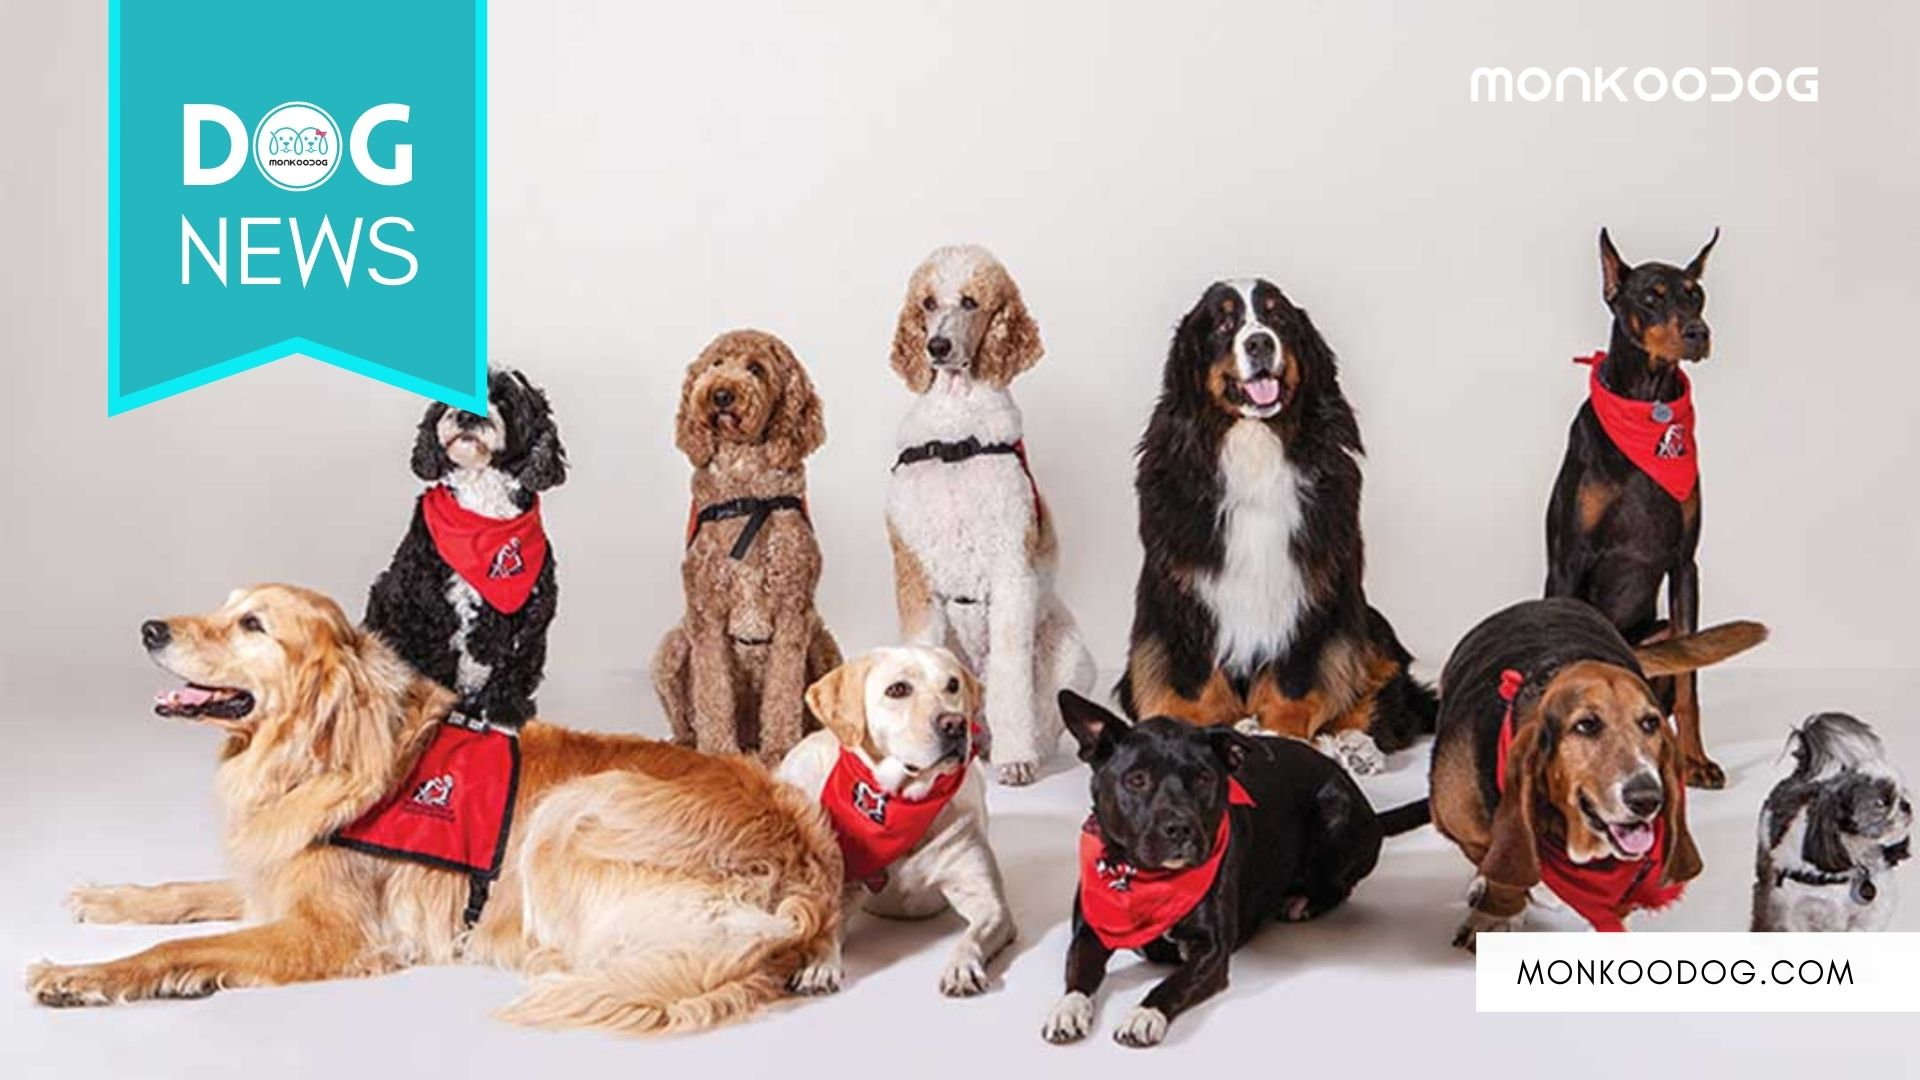 Therapy Dogs helping families of the missing by comforting them